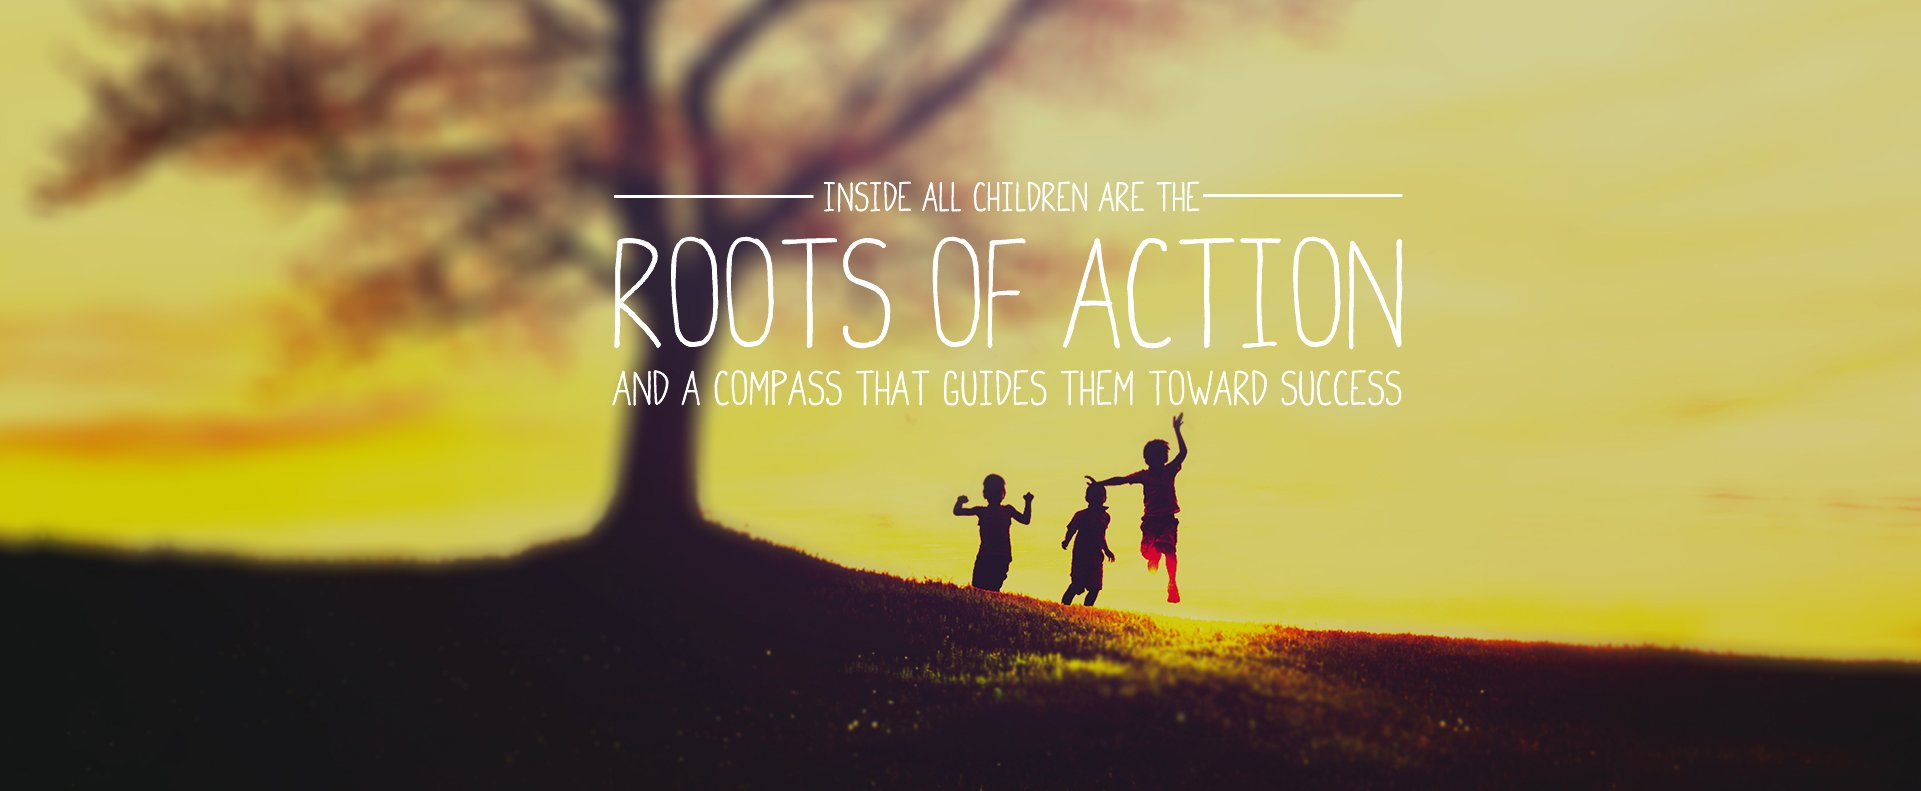 Inside All Children are the Roots of Action